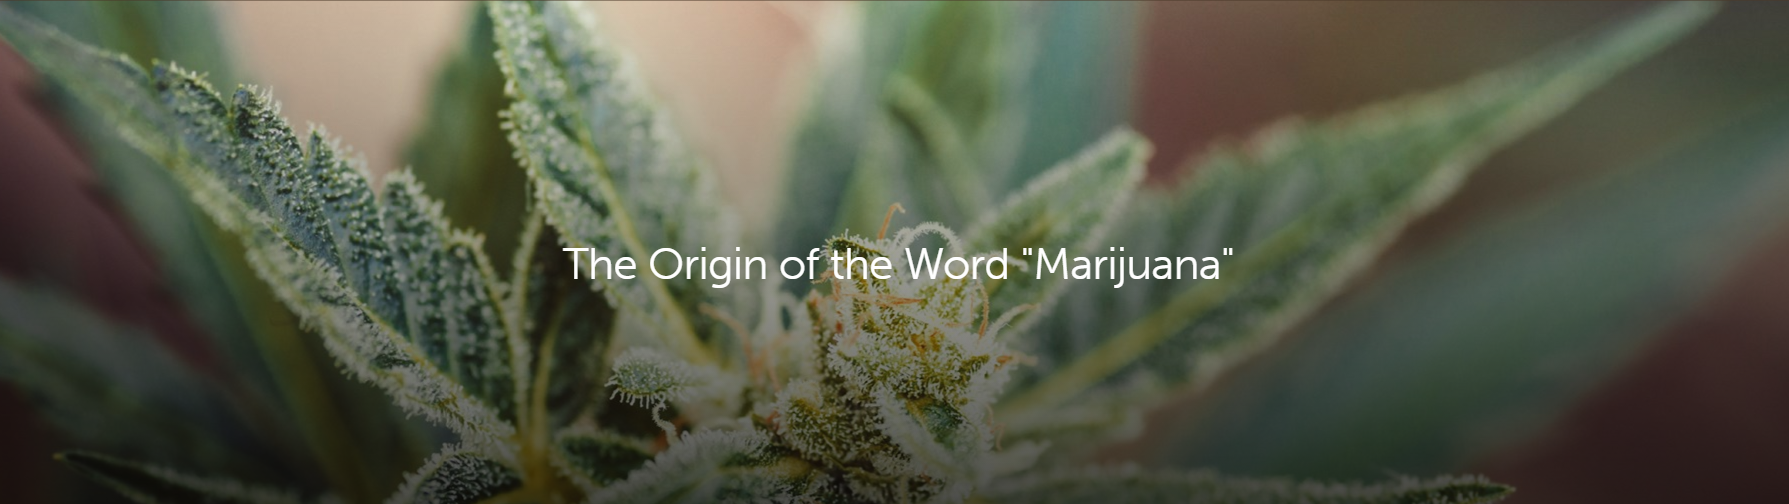 origin of the word marijuana